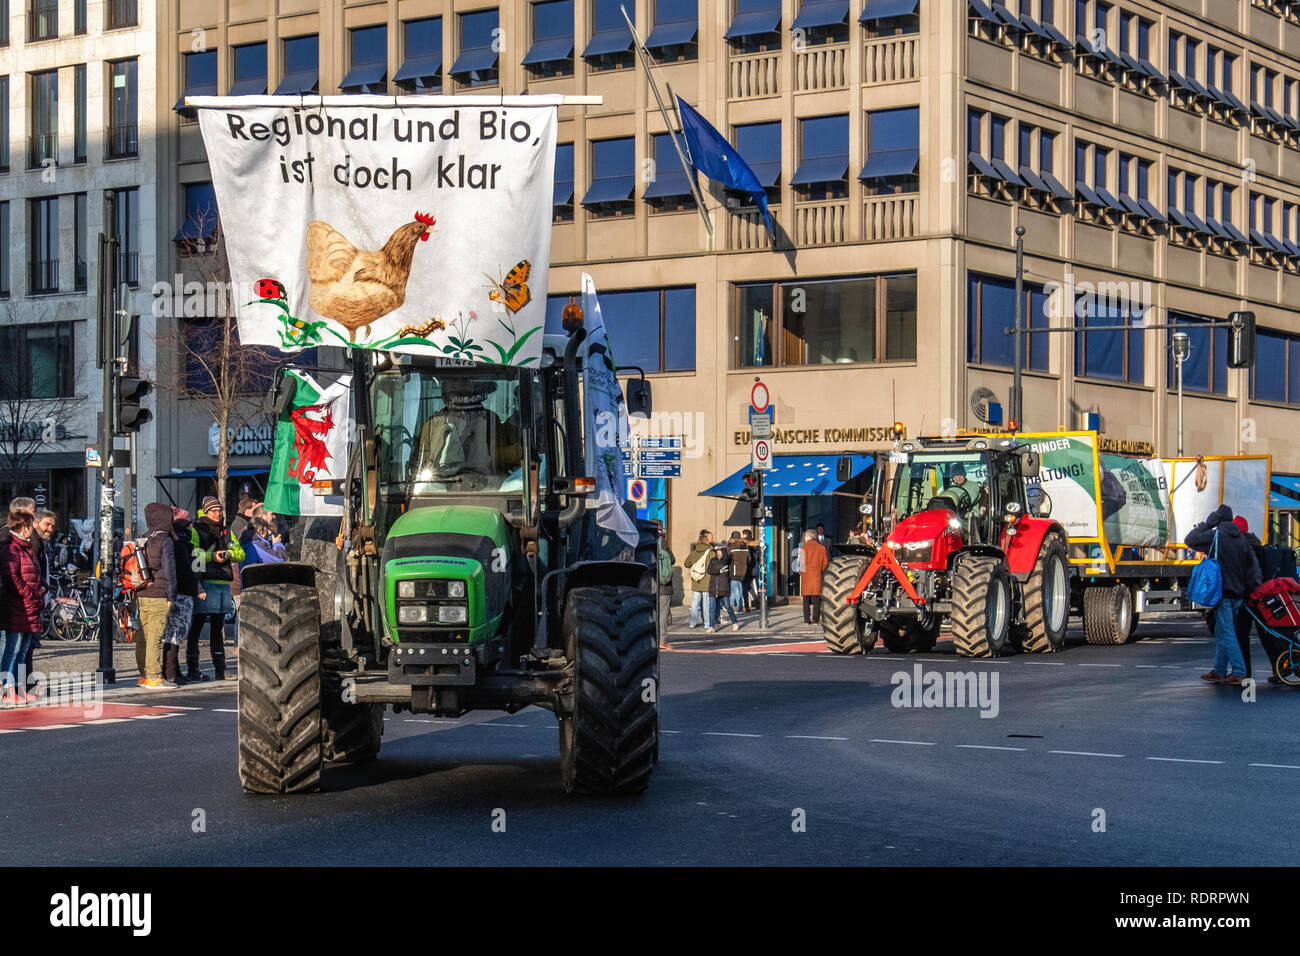 Berlin, Gemany, 19 January 2019. Farmers protest against the EU farm subsidies in Germany. A Parade of tractors  drove past the European Commission building in Unter den Linden as they took part in the protest march against current agricultural policy. Activists protest that large farming enterprises are favoured over smaller farms that support environmentally friendly methods. credit: Eden Breitz/Alamy Live News Credit: Eden Breitz/Alamy Live News Stock Photo